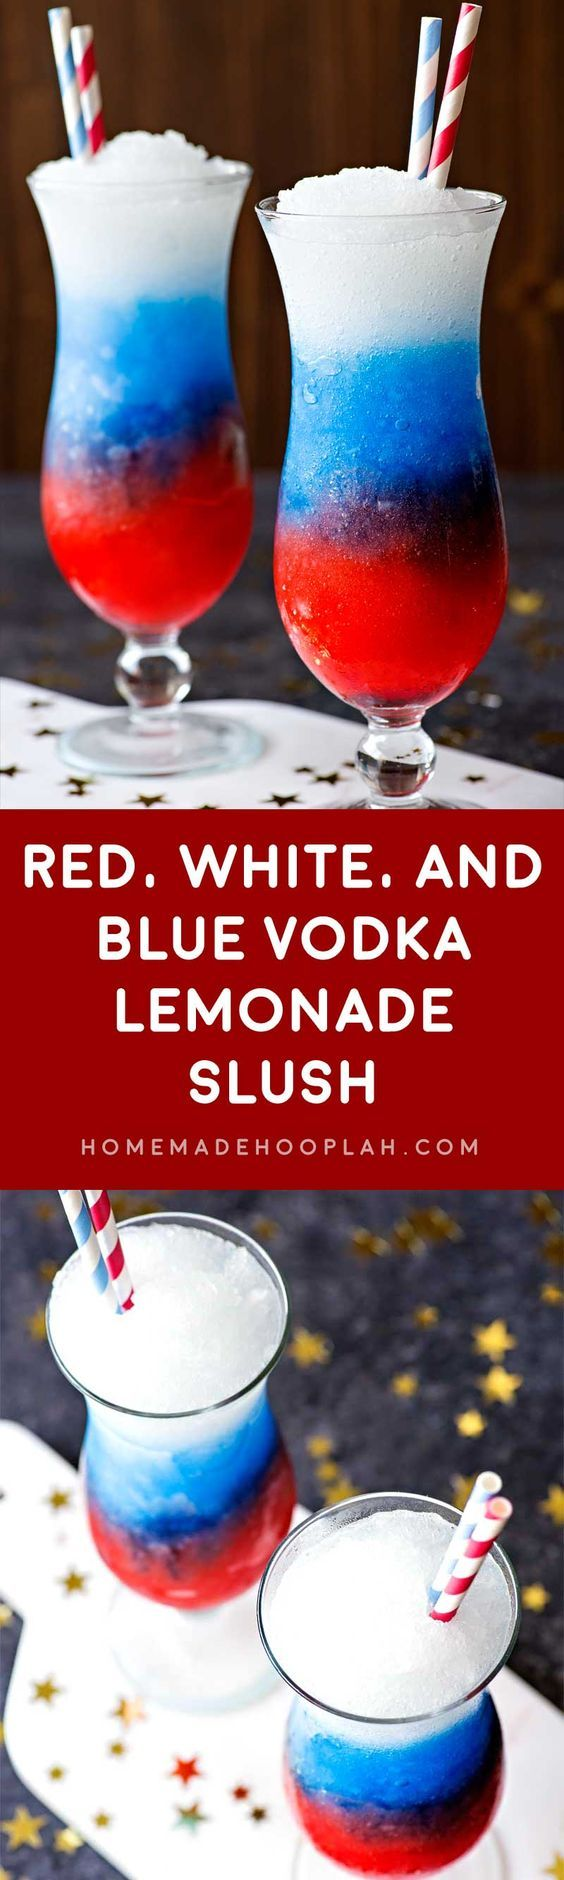 Red White and Blue Vodka Lemonade Slush! Celebrate your patriotism with a refreshing slush made with grenadine, blue curacao, and spiked lemonade. | HomemadeHooplah.com #summeralcoholicdrinks